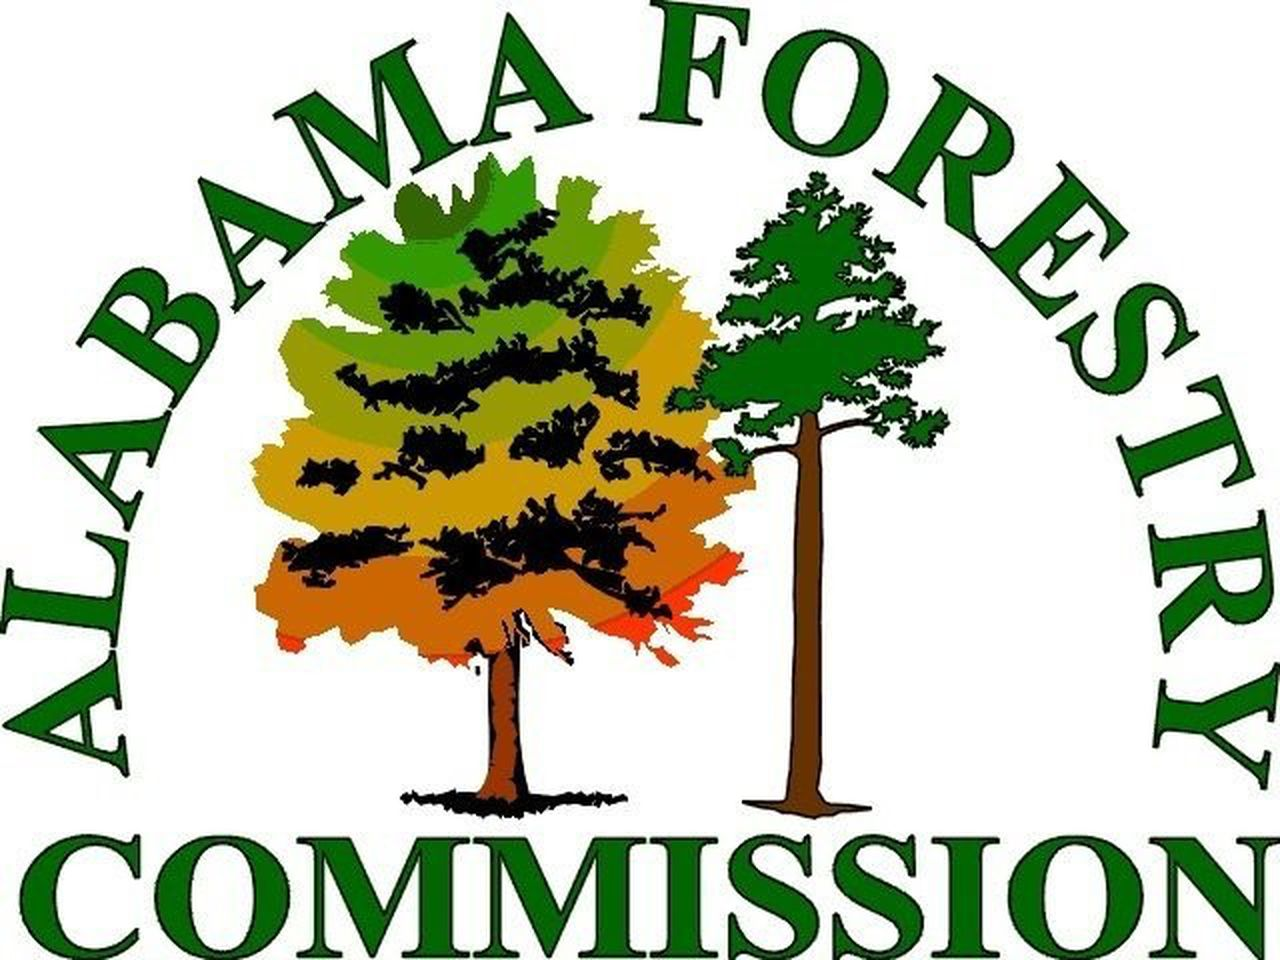 Read the latest trees and woodlands news from across merseyside and n.cheshire, from tree planting triumphs to ways you can get involved. Alabama Forestry Commission Firefighters Return From Fighting Fires In Washinton Al Com